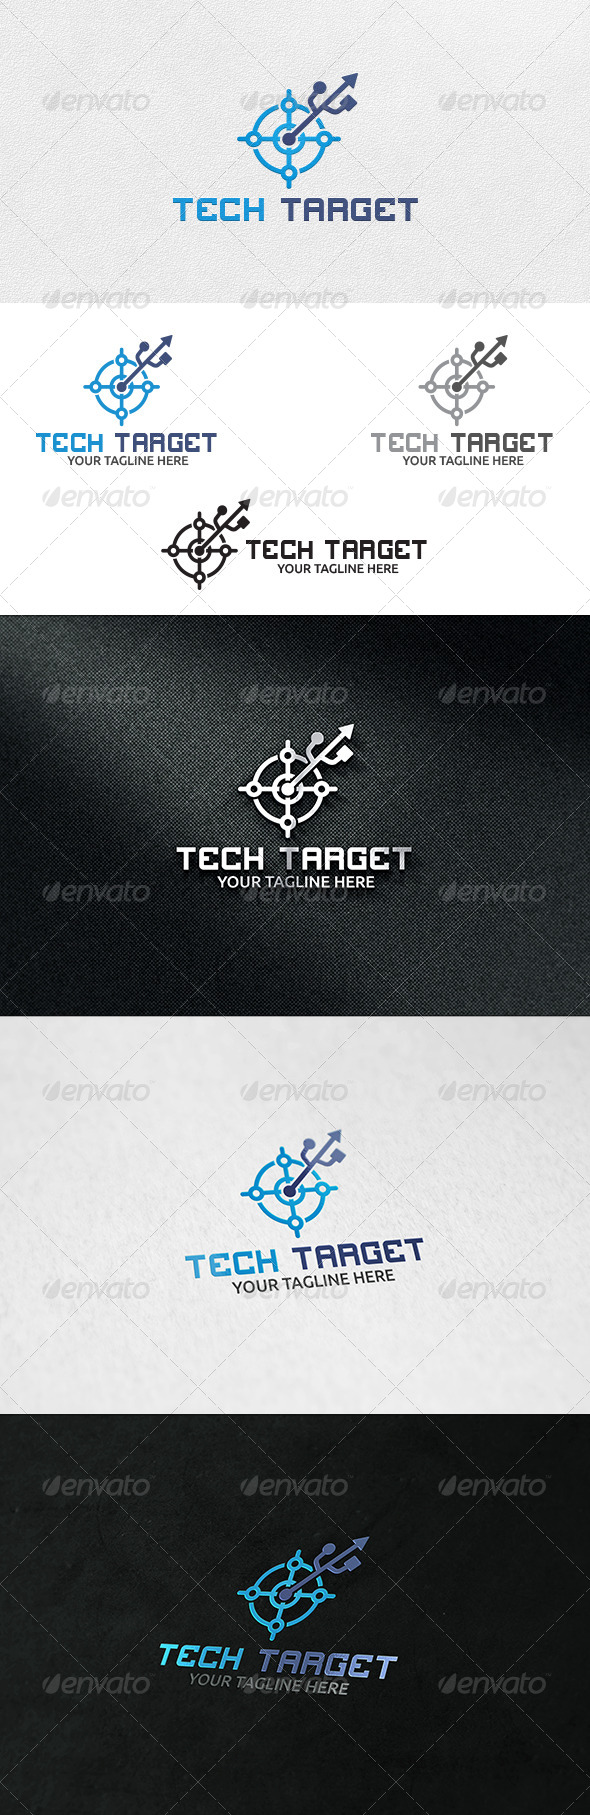 GraphicRiver Tech Target Logo Template 6913561